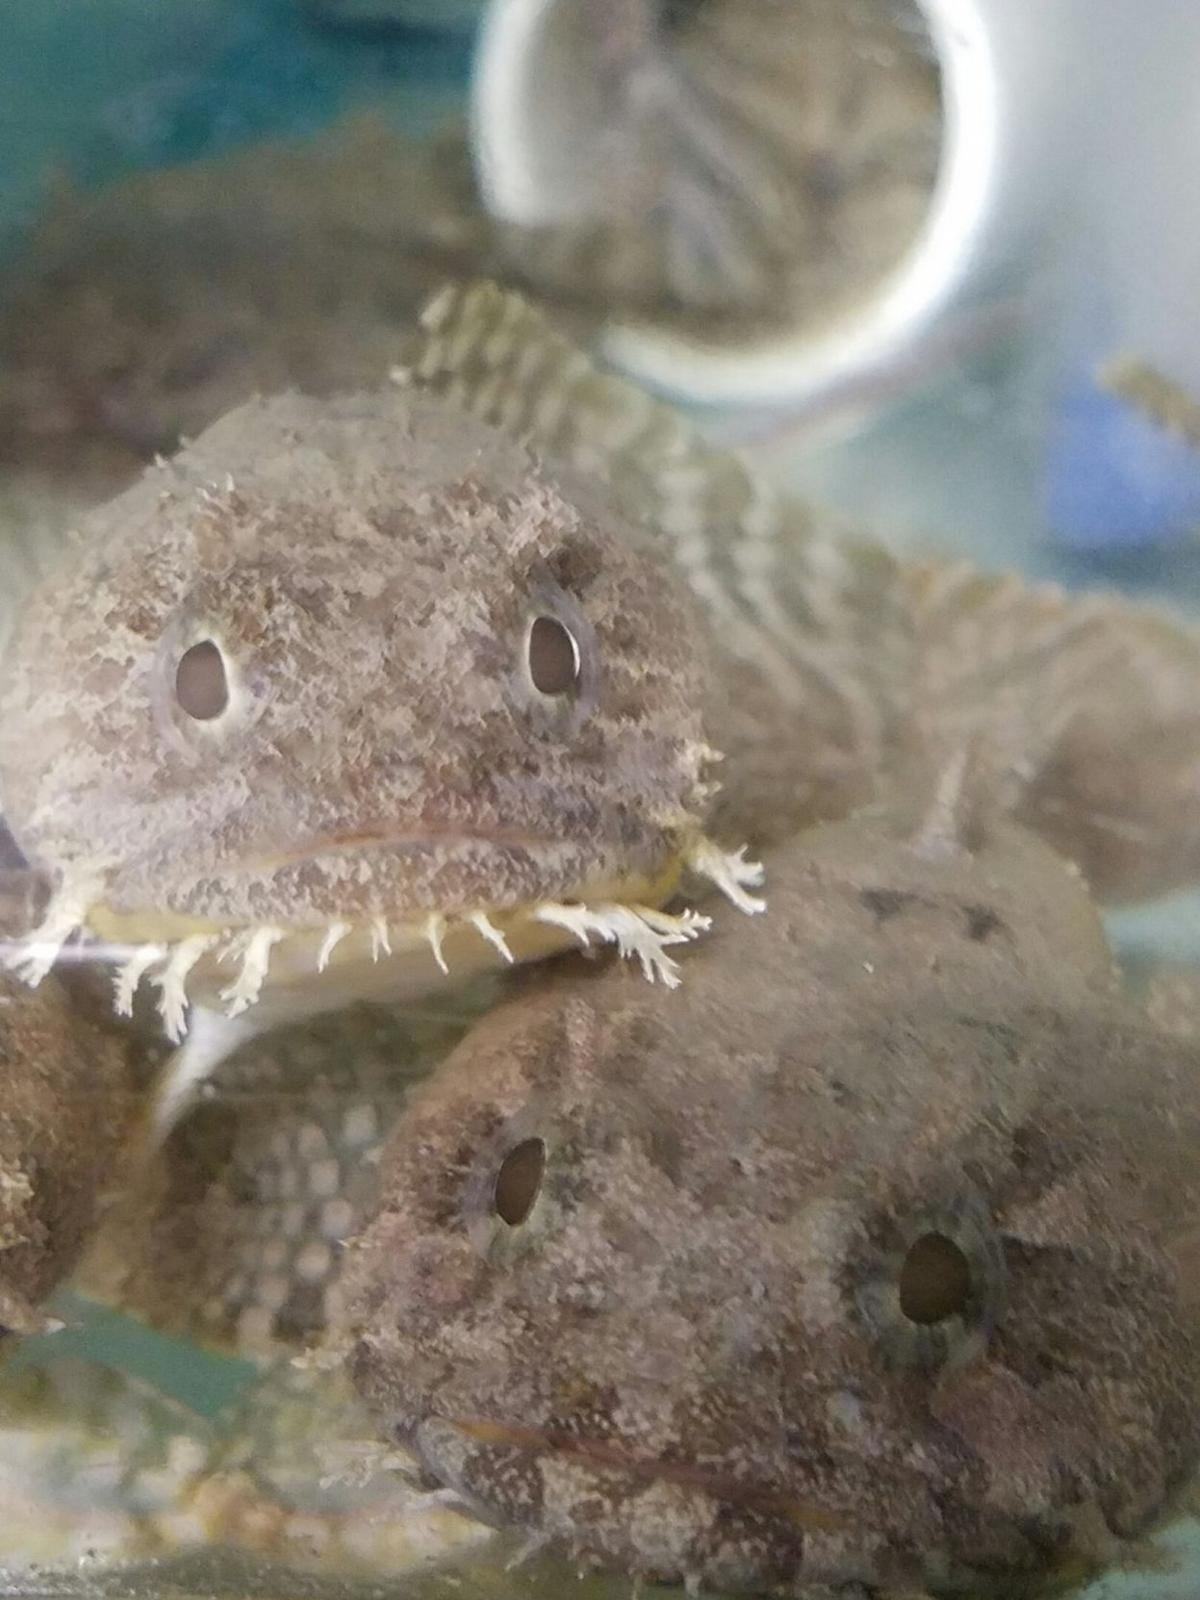 Toadfish in the lab